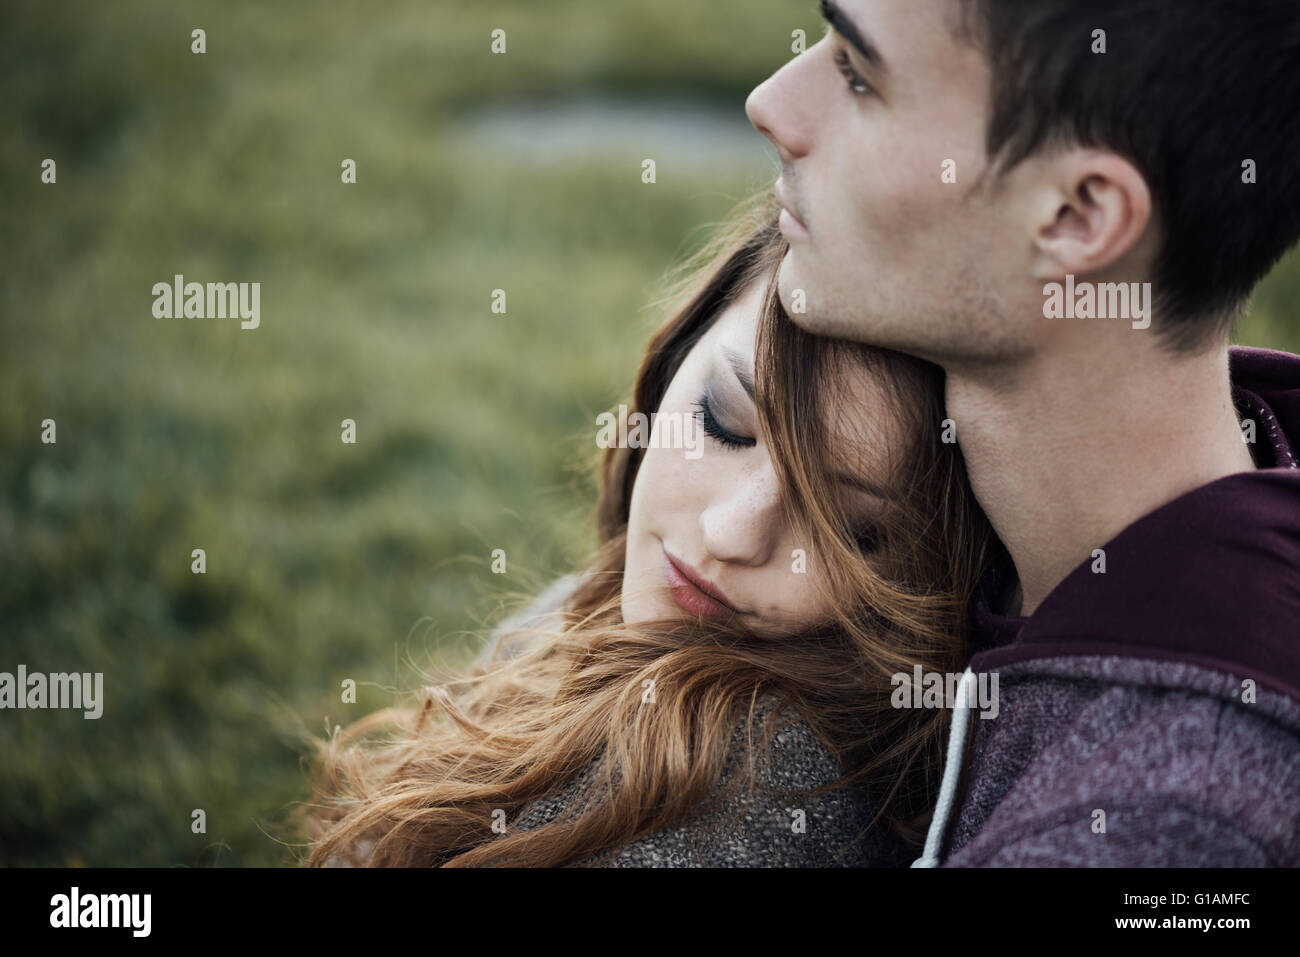 Young loving couple relaxing on grass and hugging, she is smiling and leaning on his shoulder, relationships and - Stock Image